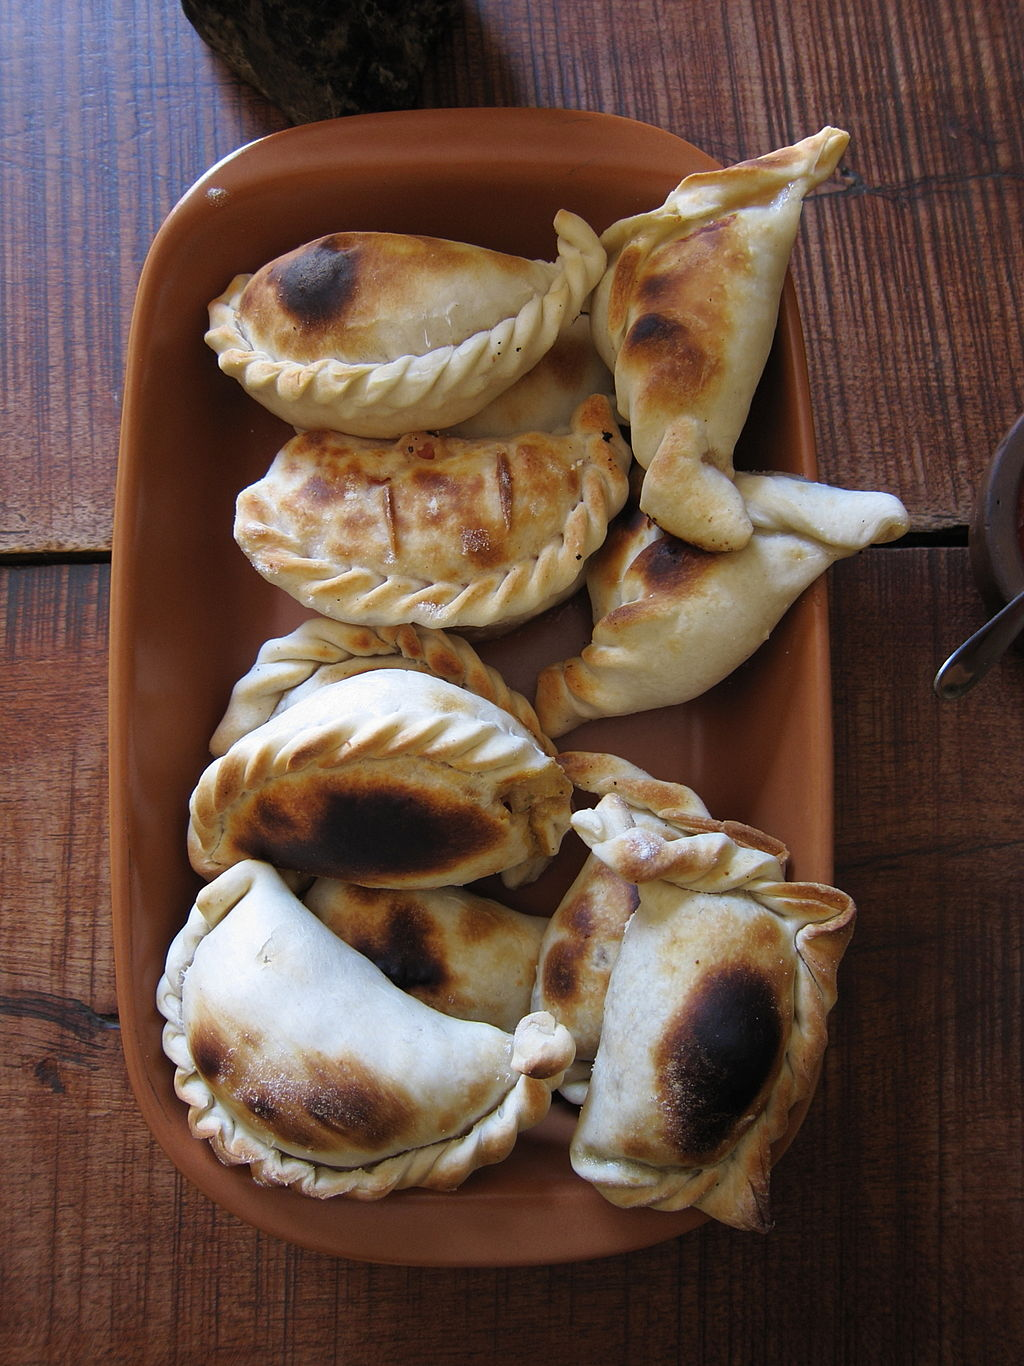 1024px-Empanadas_salteñas_By travelwayoflife [CC BY-SA 2.0 (httpcreativecommons.orglicensesby-sa2.0)], via Wikimedia Commons